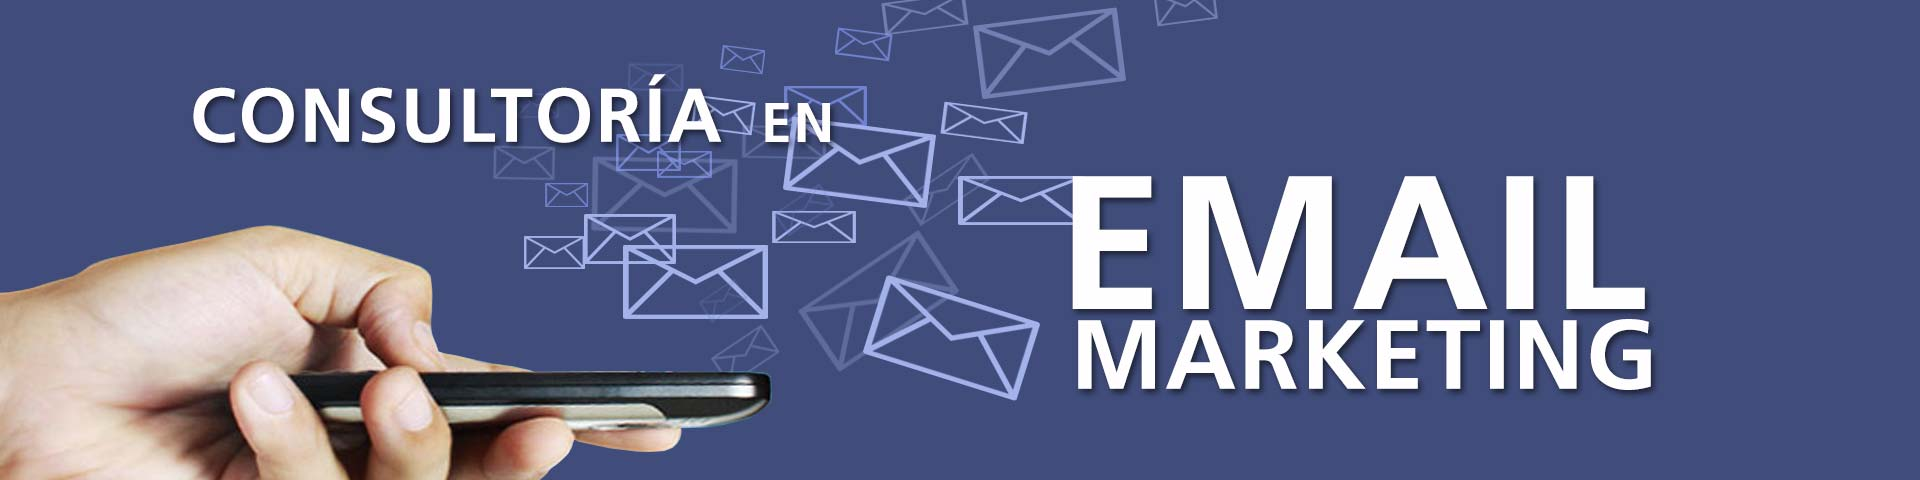 Consultoría en email marketing